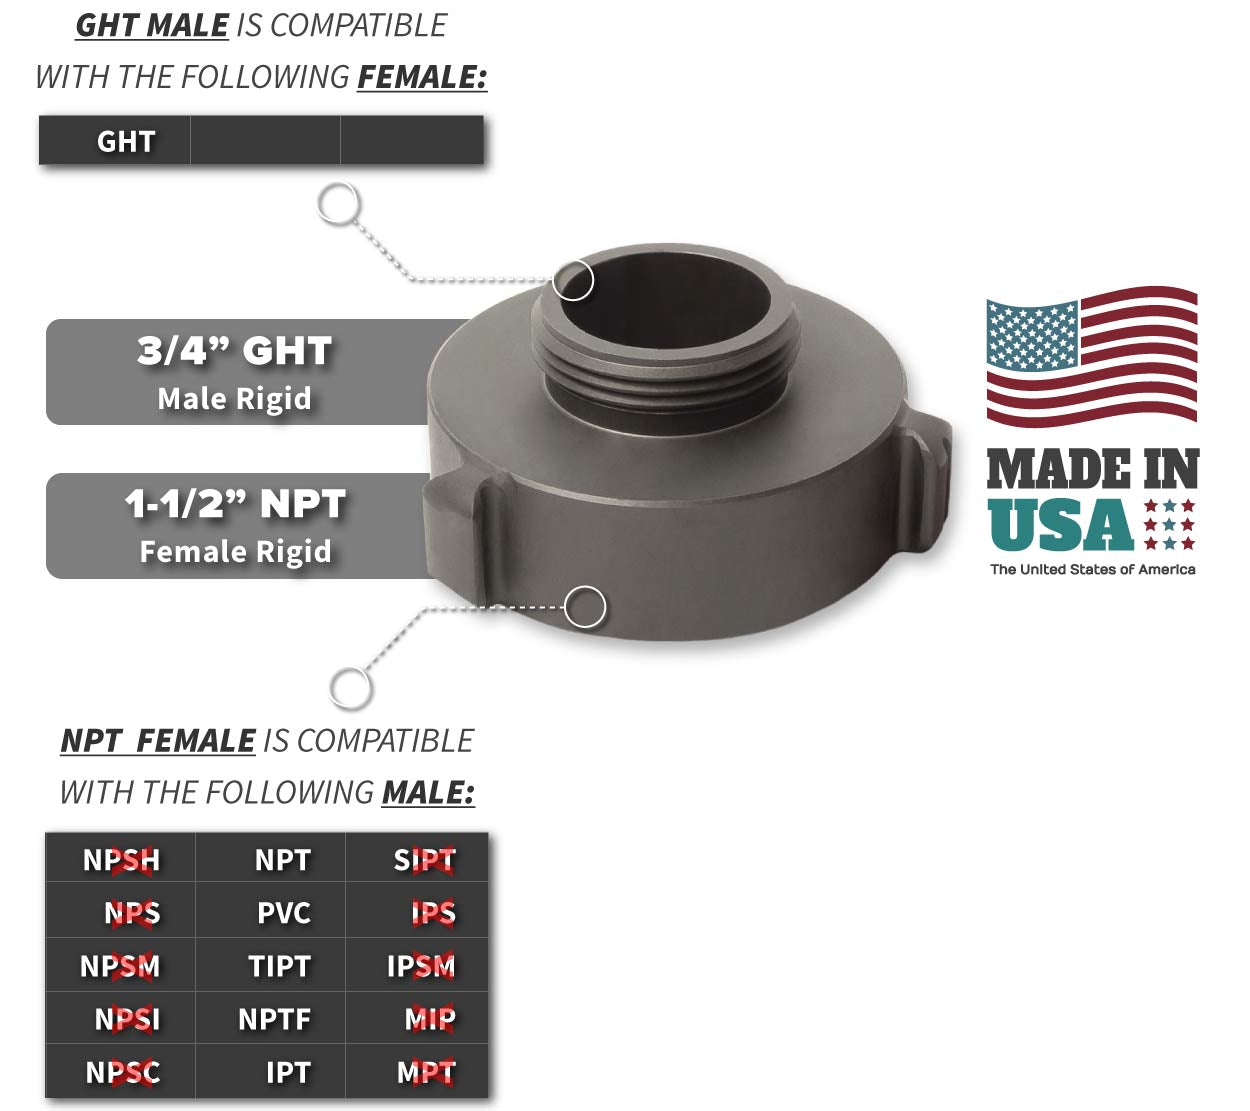 1.5 Inch NPT Female x 0.75 Inch GHT Male Compatibility Thread Chart